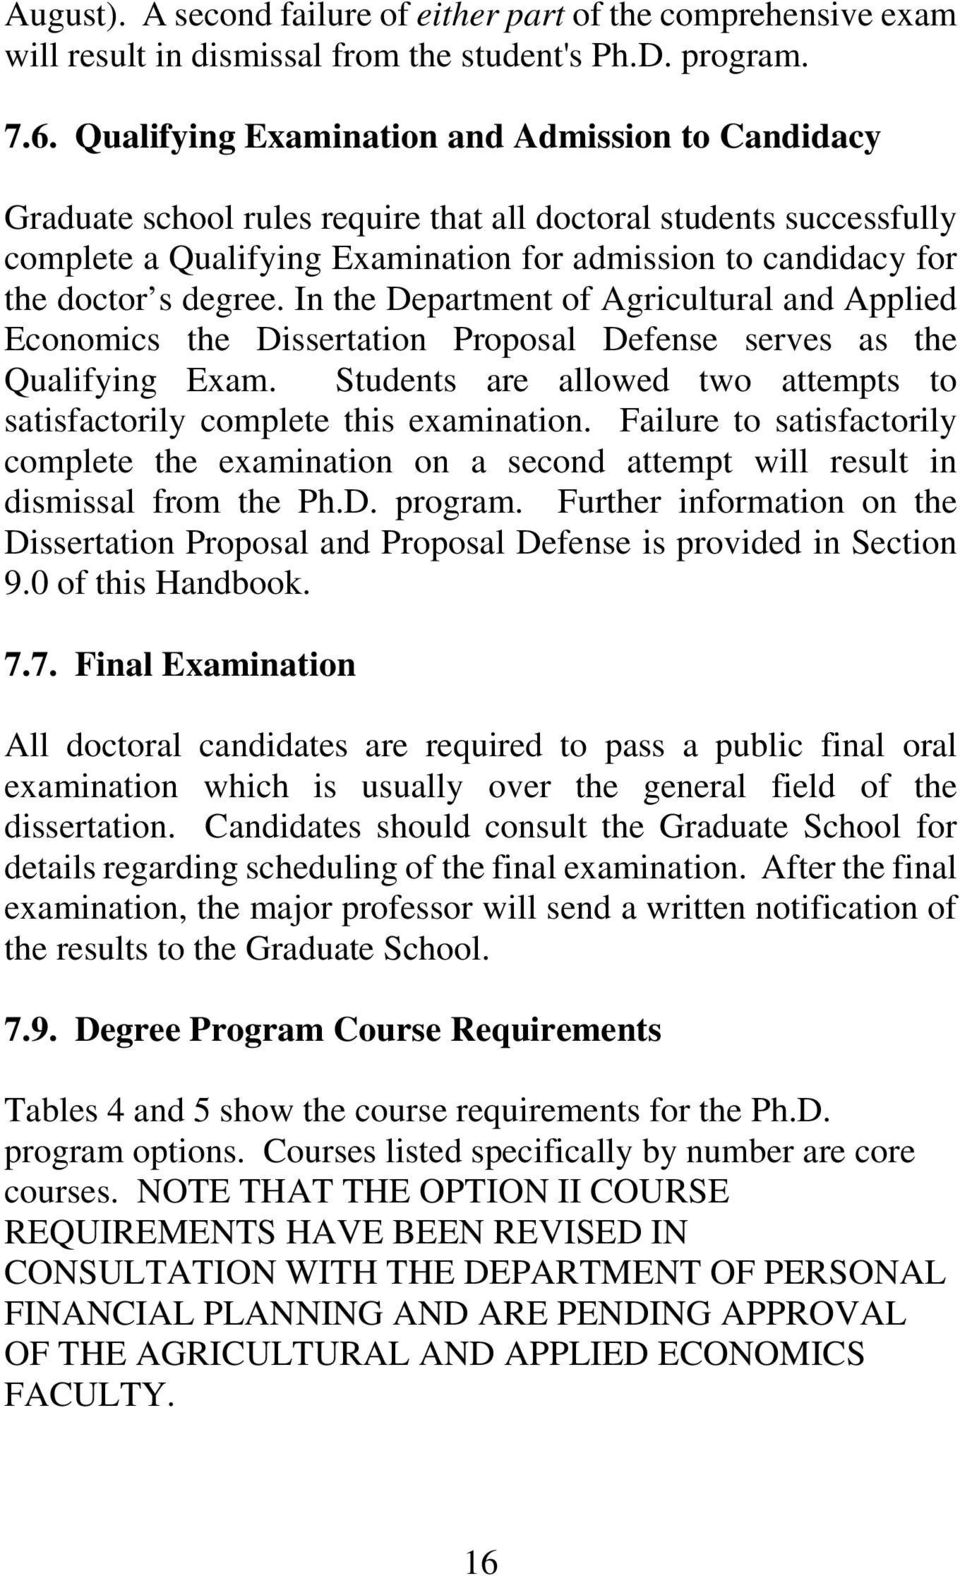 degree. In the Department of Agricultural and Applied Economics the Dissertation Proposal Defense serves as the Qualifying Exam.